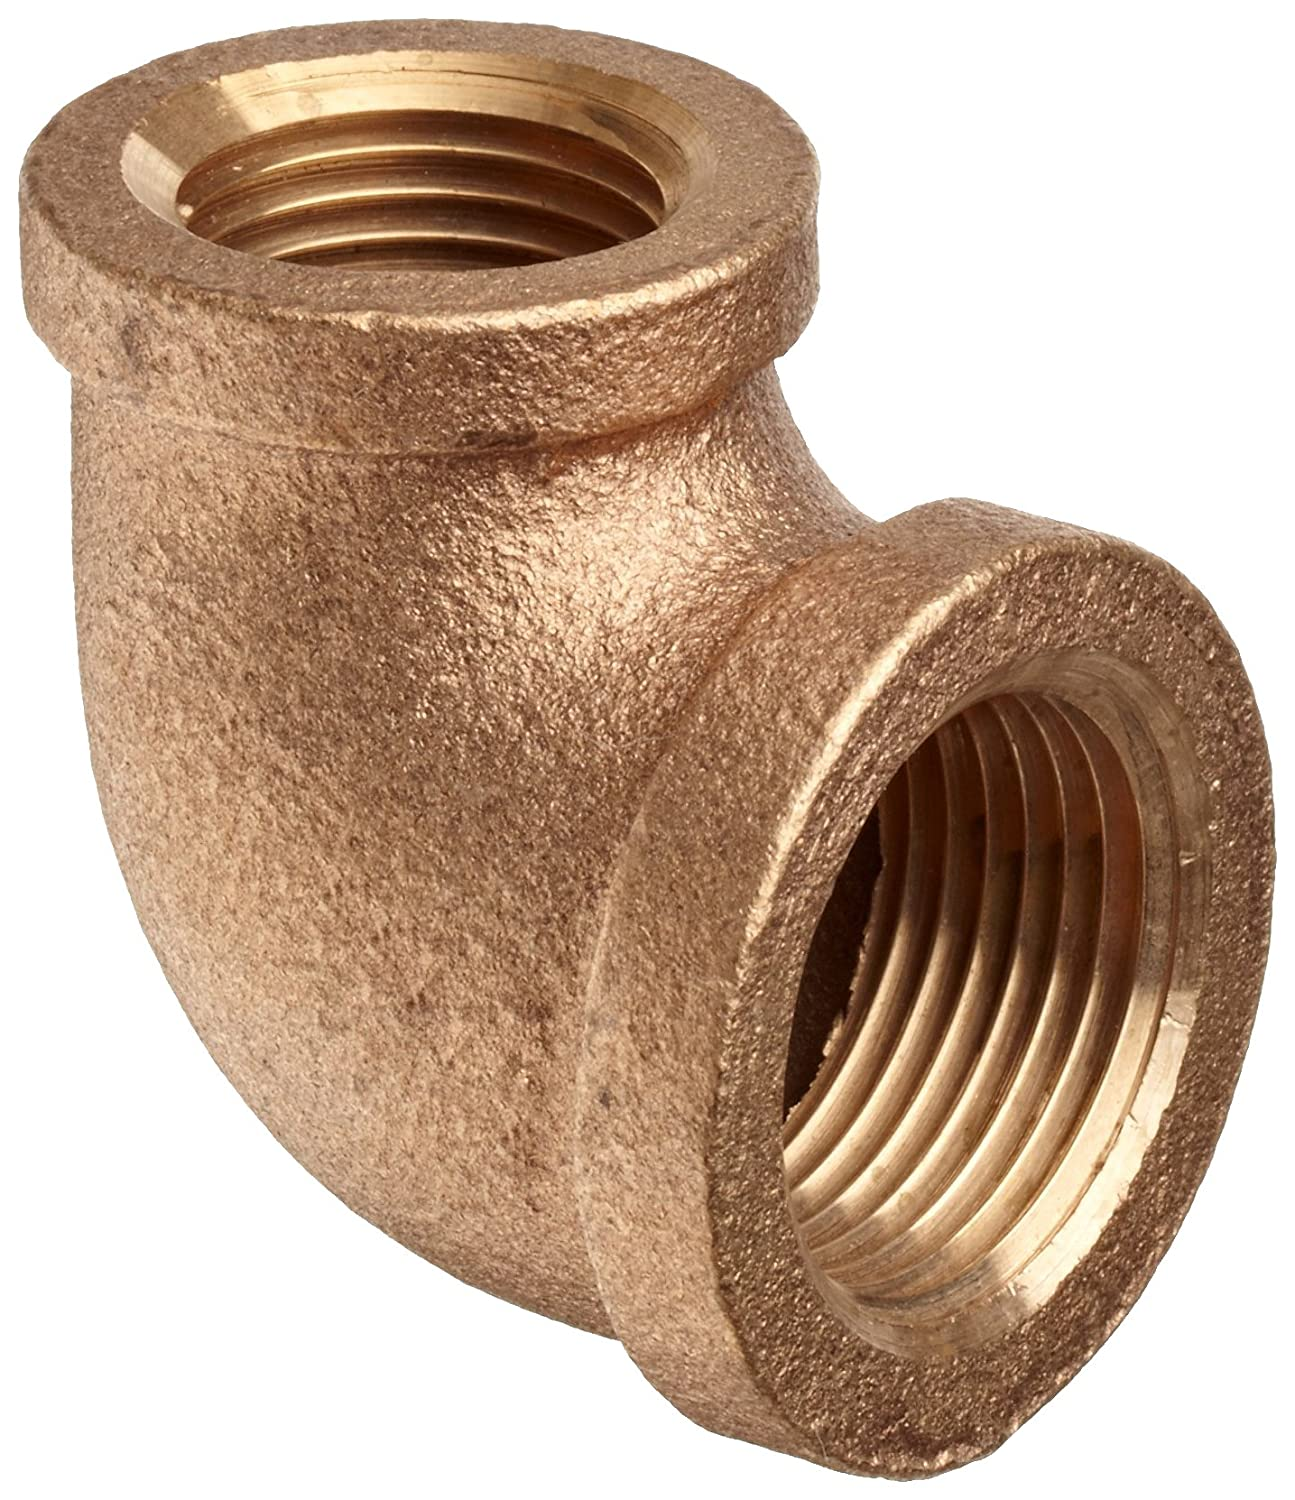 1//2 x 3//8 NPT Female 90 Degree Reducing Elbow Brass Pipe Fitting Class 125